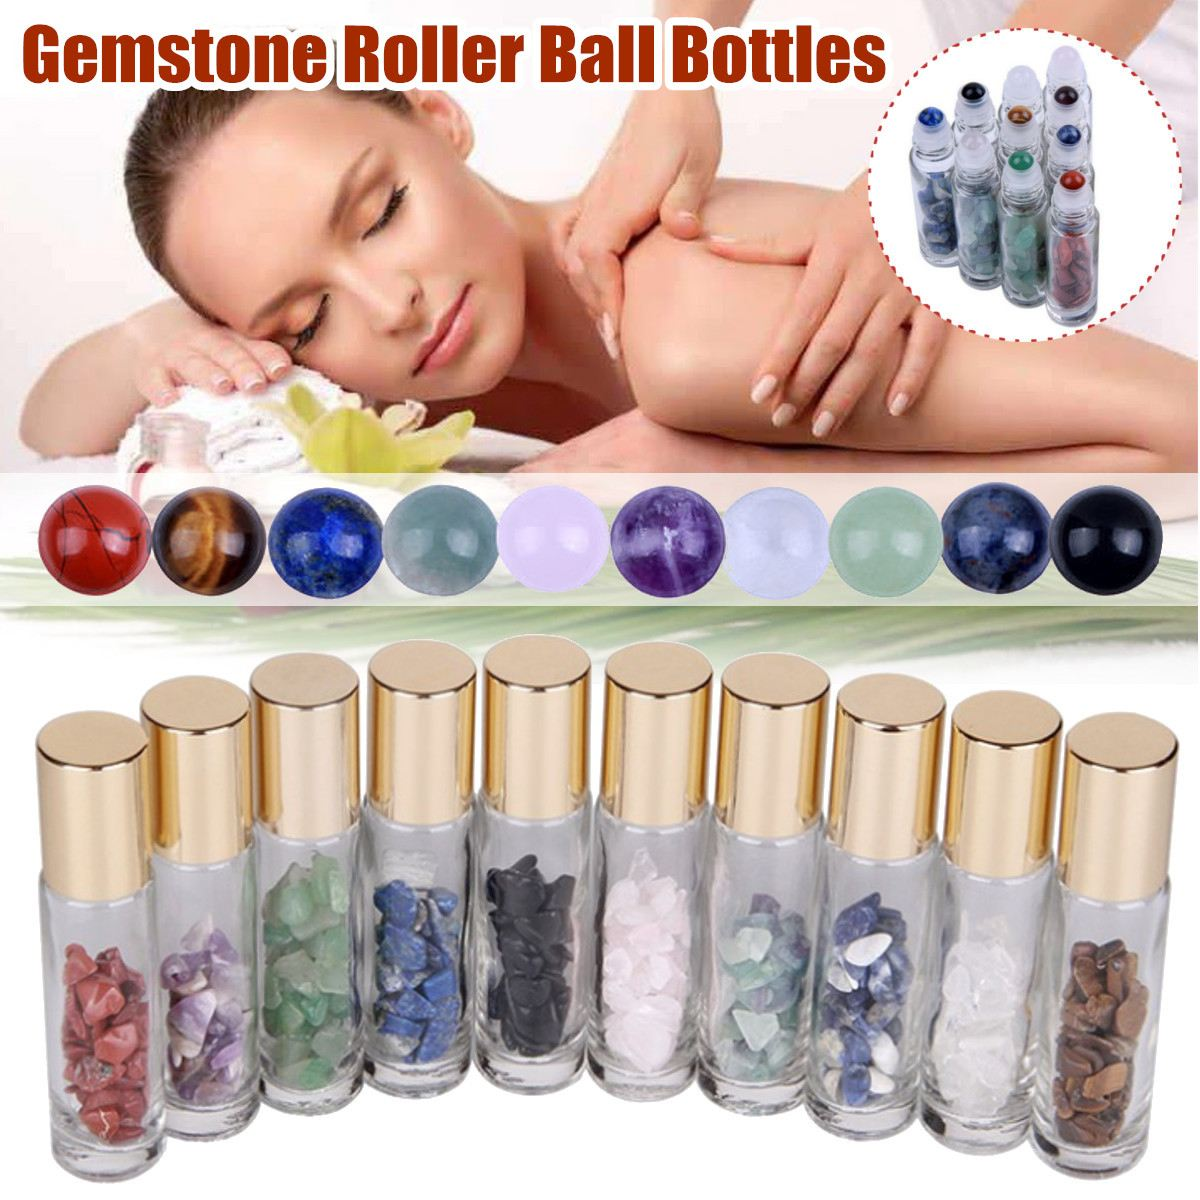 10Pcs 10ml Natural Gemstone Essential Oil Roller Ball Bottles Transparent Perfumes Oil Liquids Roll On Bottles With Crystal Chip